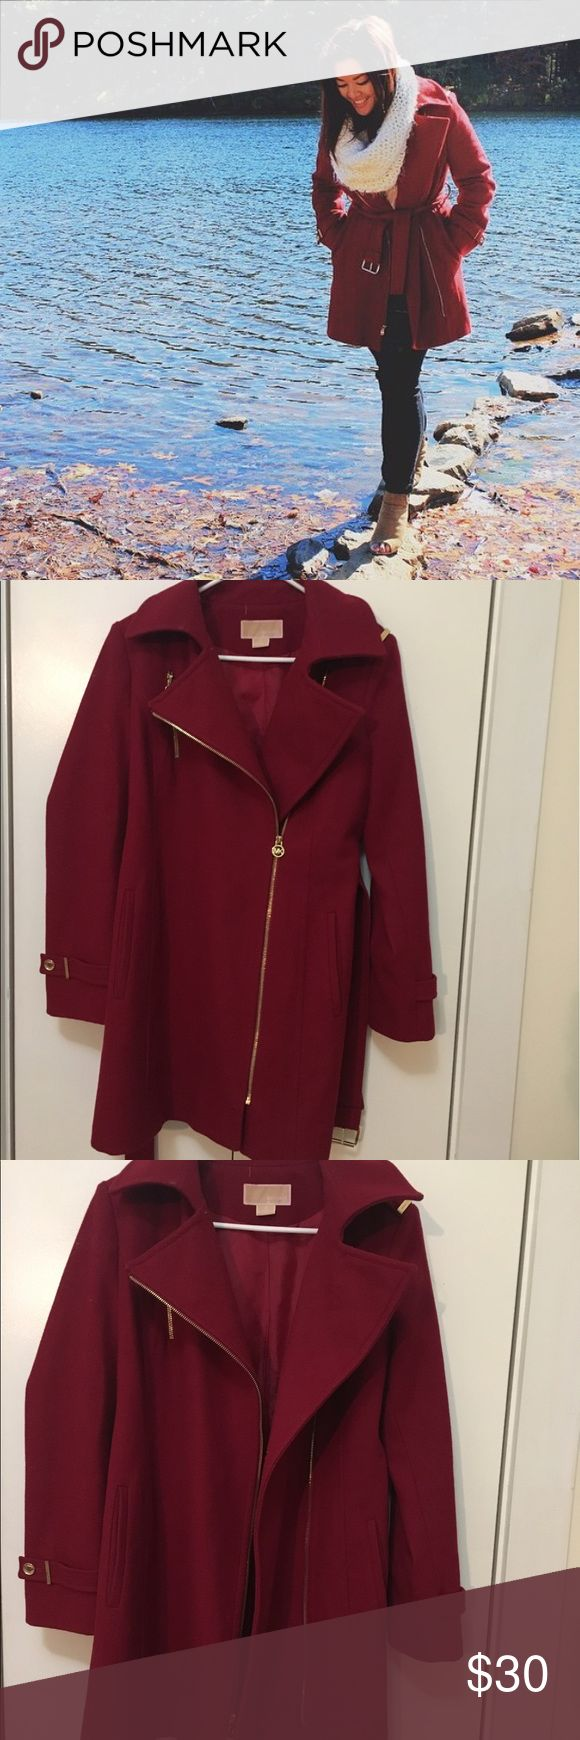 Red Michael Kors Jacket Red Michael Kors Jacket with gold accents. Perfect for fall weather and goes great with dresses or day to day wear! MICHAEL Michael Kors Jackets & Coats Pea Coats